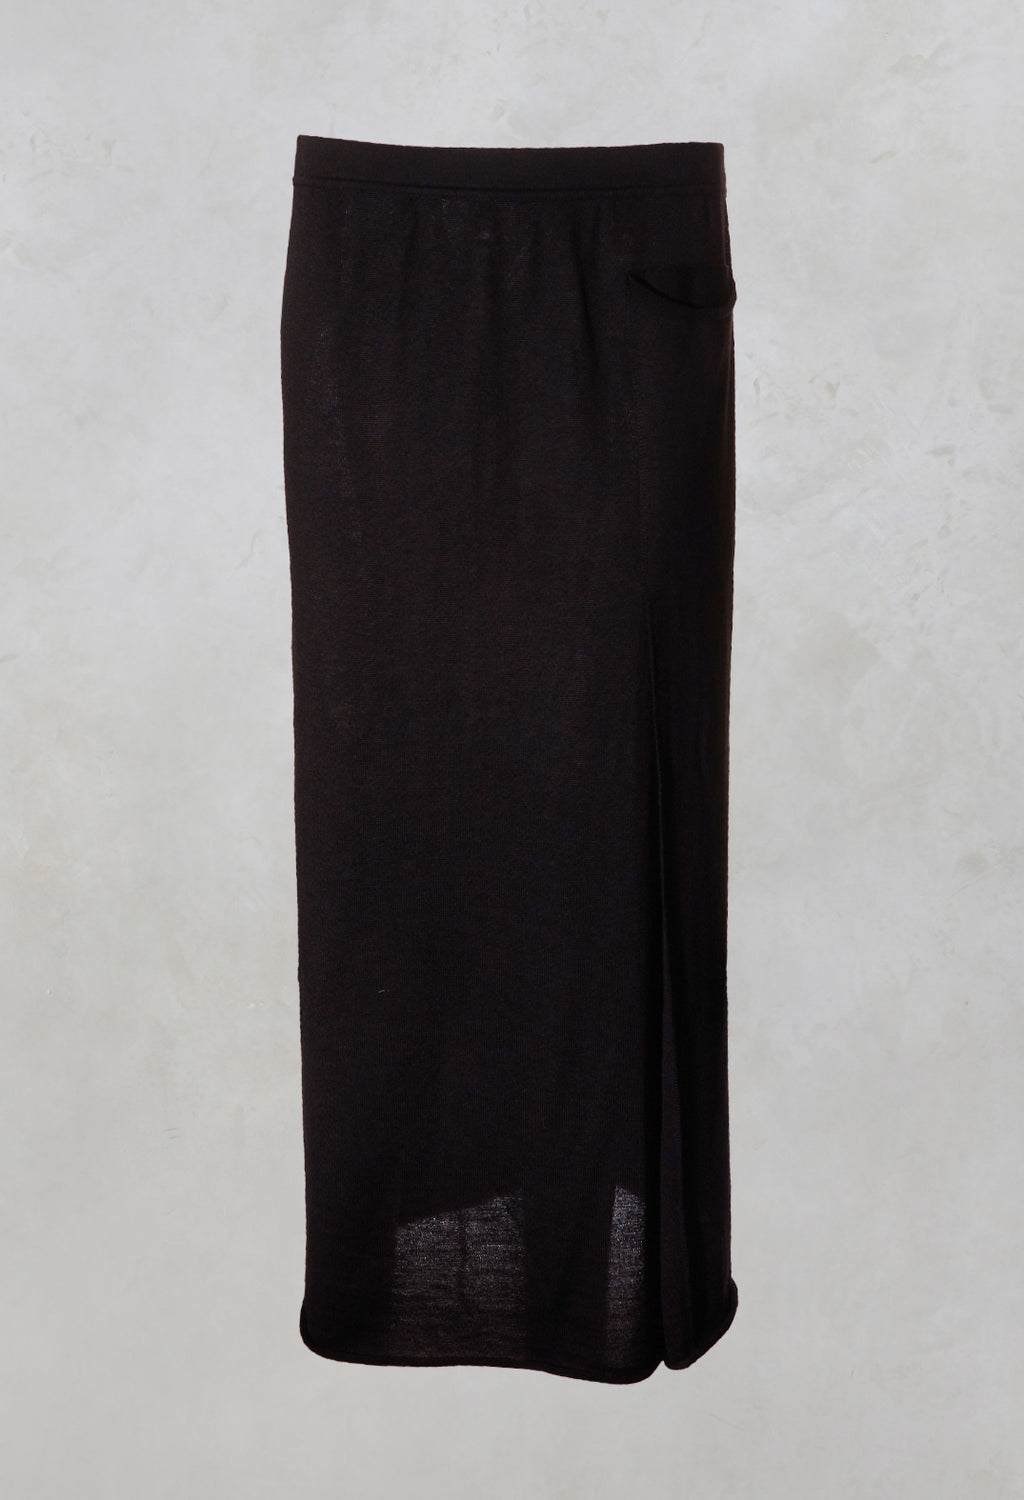 Long Fine Knit Skirt with Pocket in Black